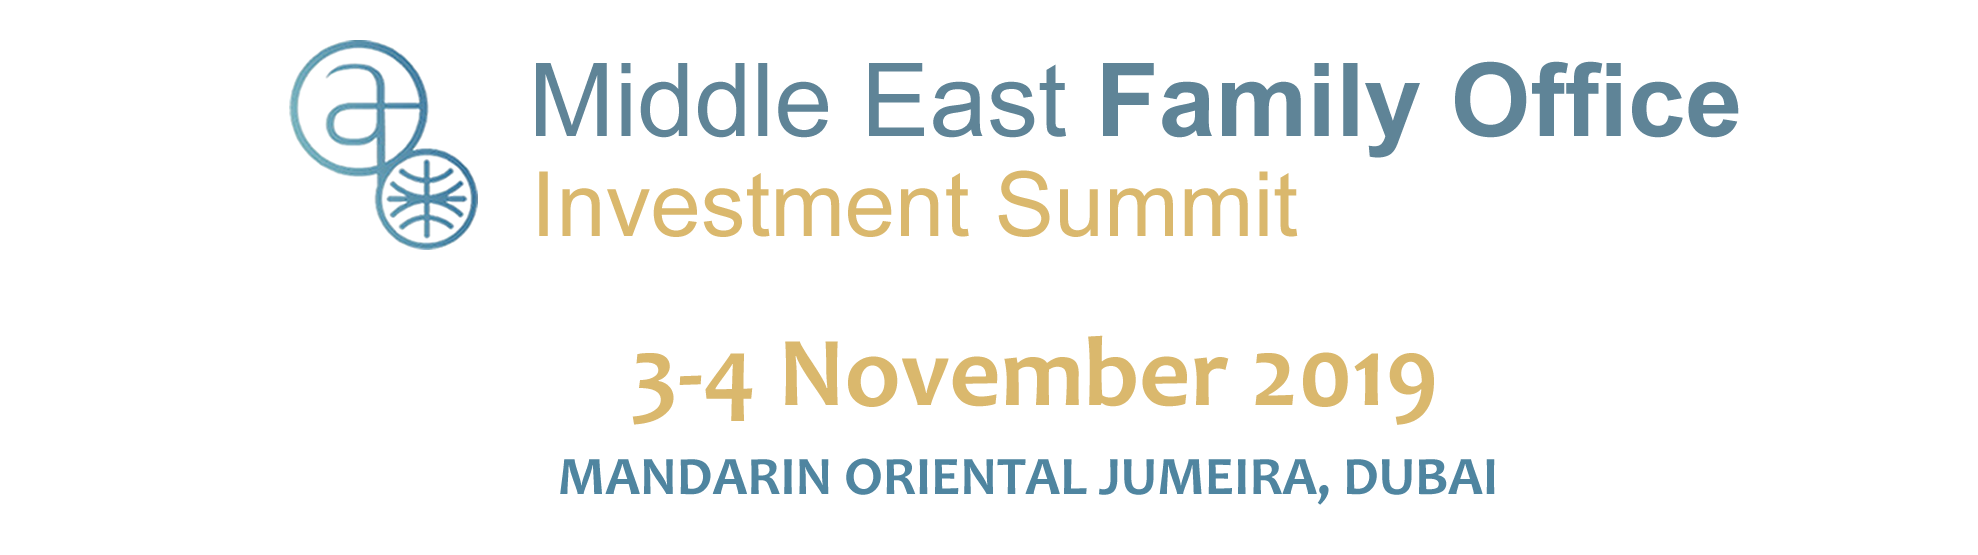 Middle East Family Office Investment Summit, Summit in Dubai